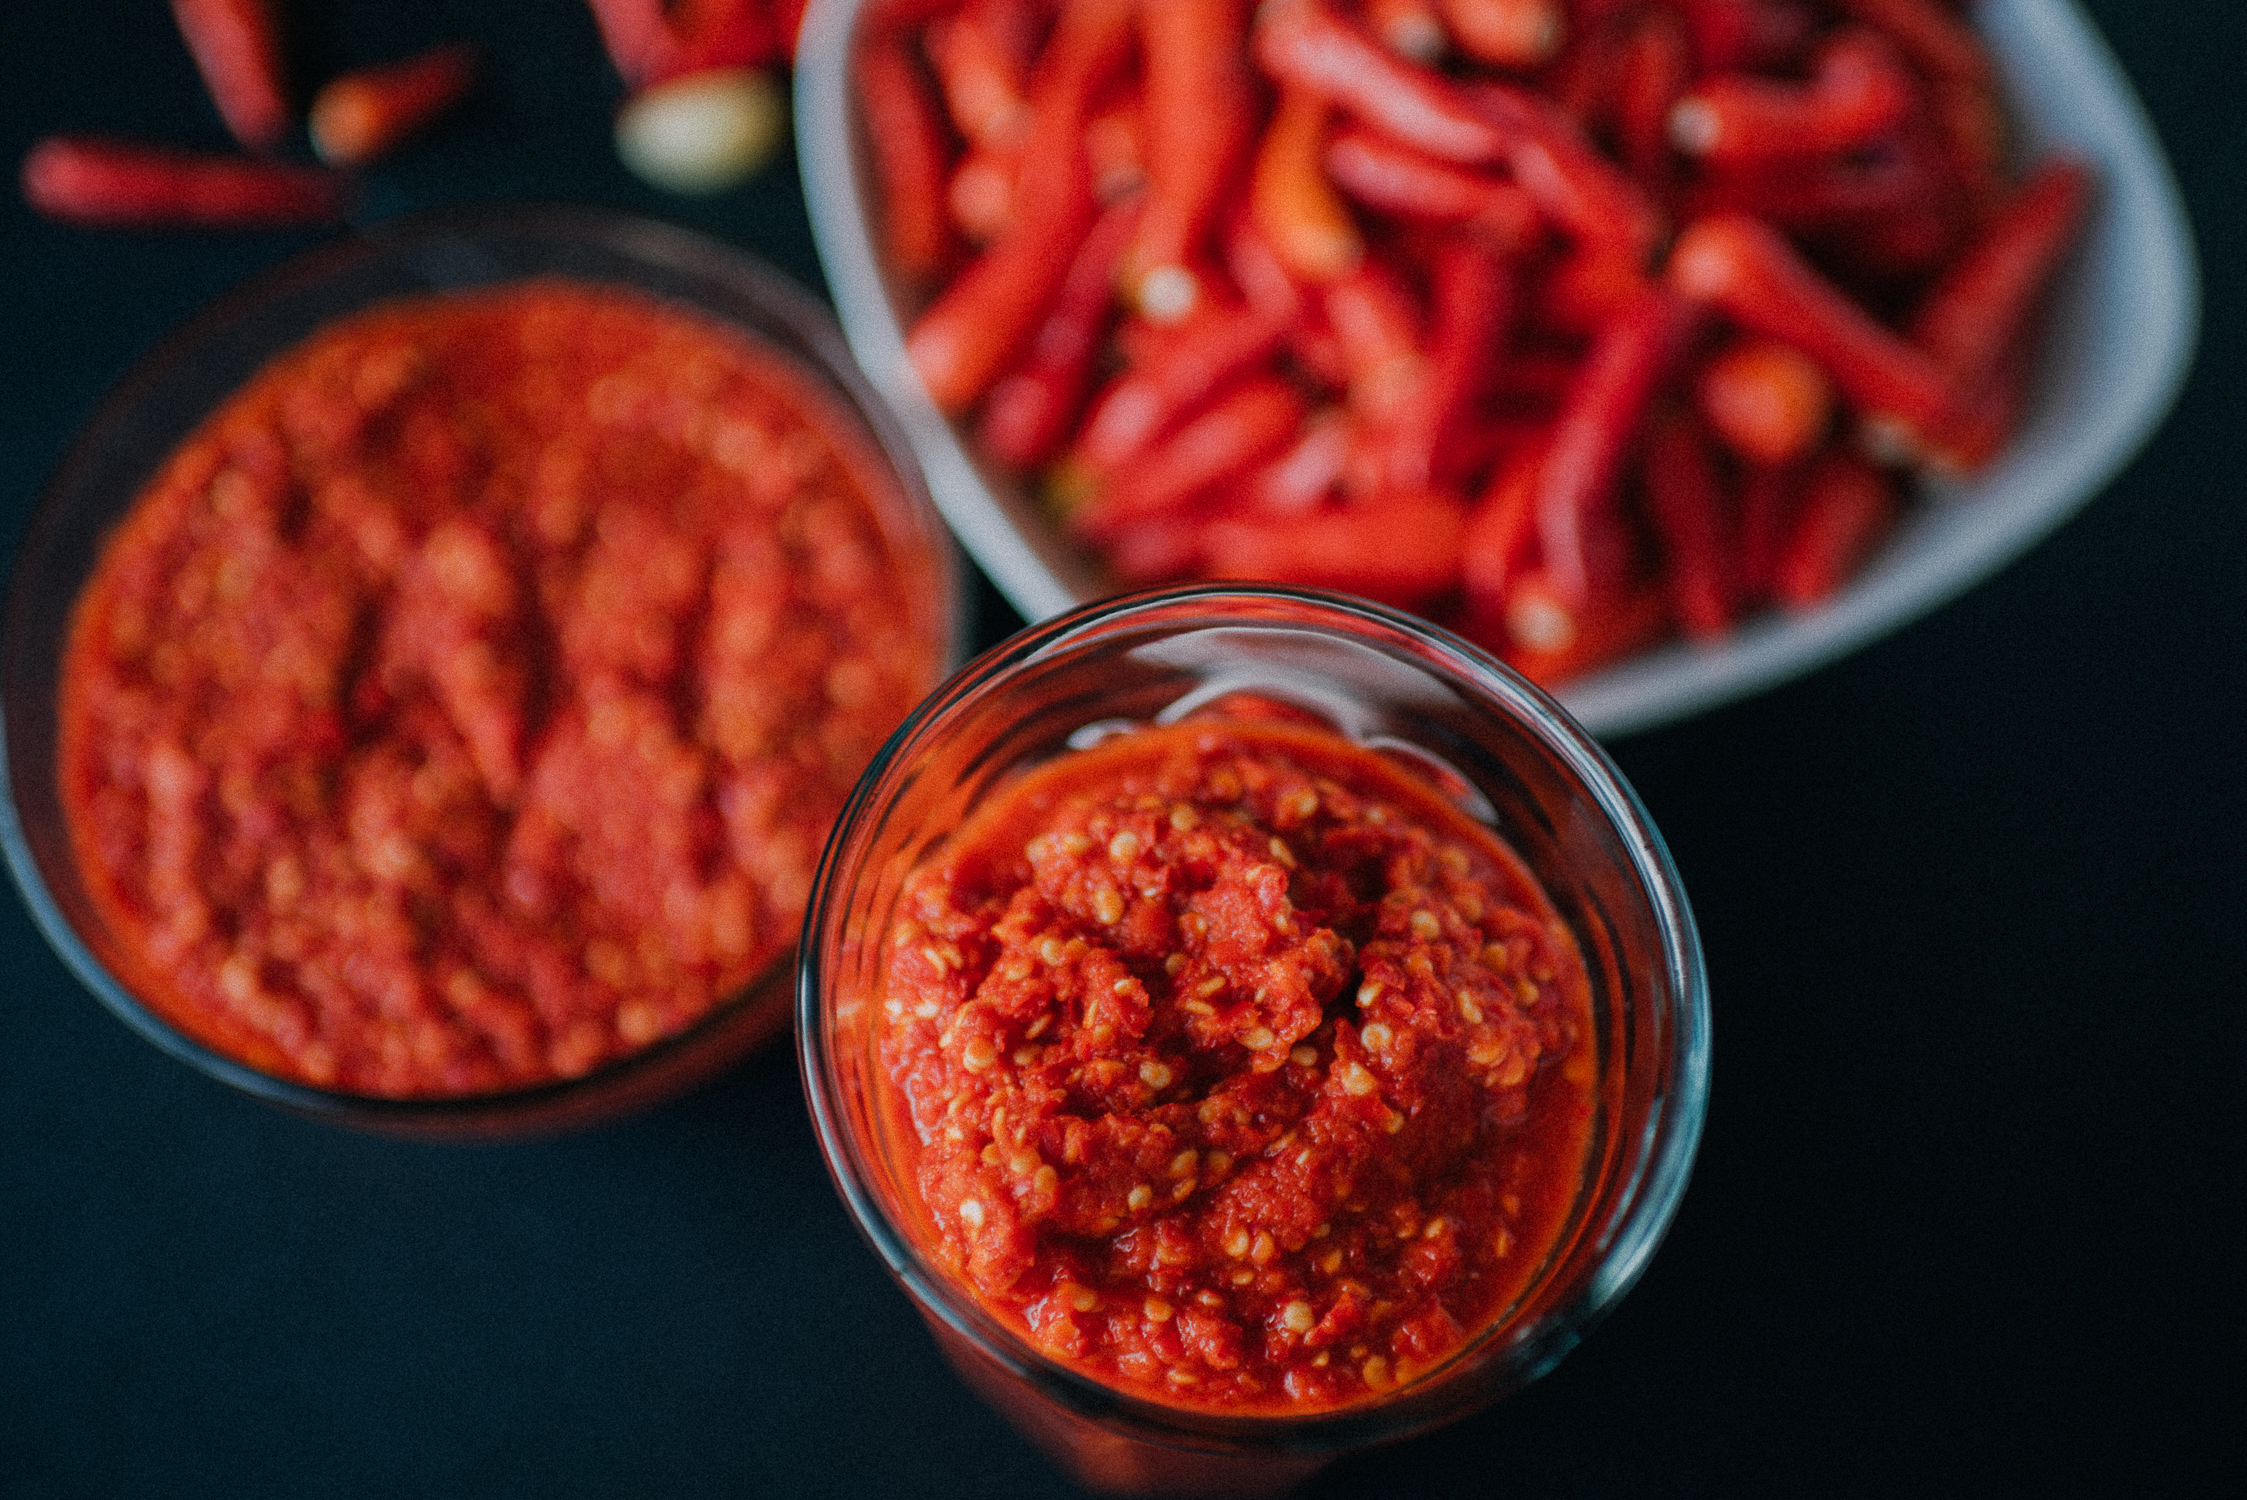 vietnamese homemade chili garlic sauce recipe